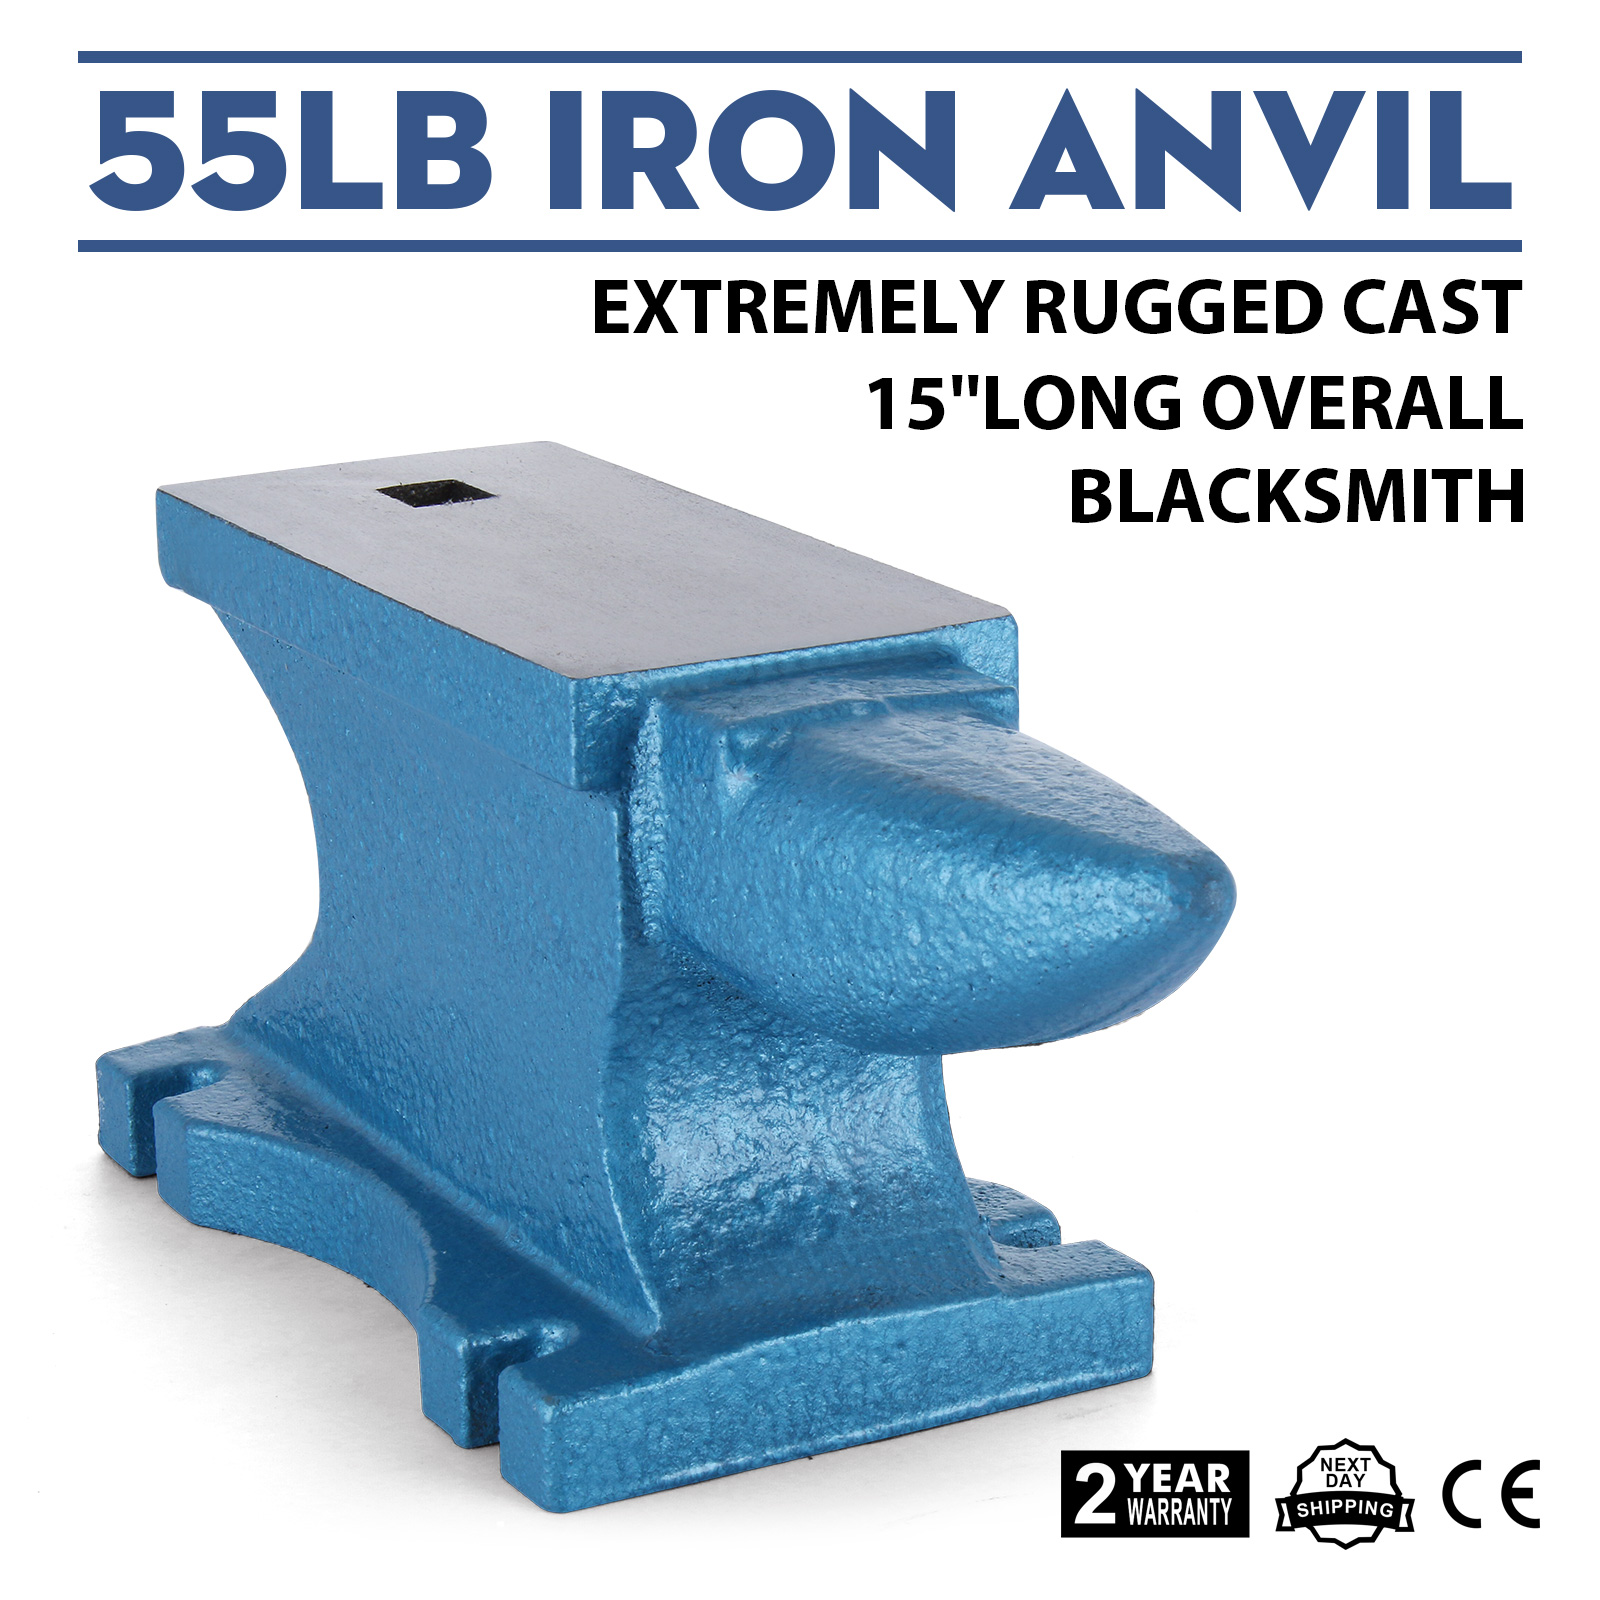 55LB Iron Anvil Extremely Rugged Cast Blacksmith Silversmith Local Tools Smooth